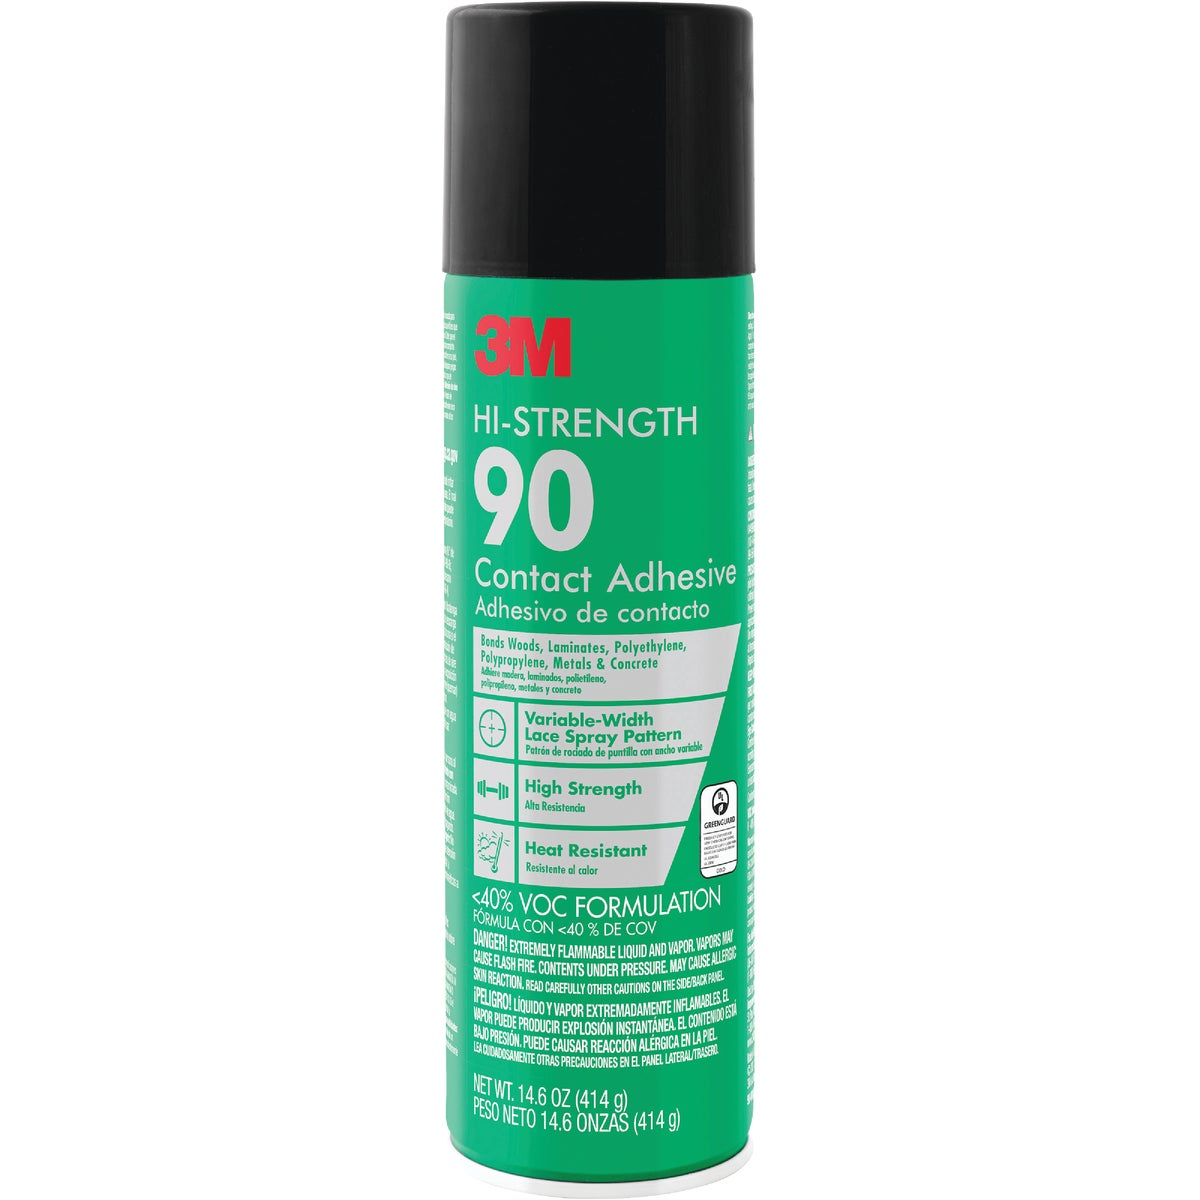 3M Hi-Strength 90 Spray Adhesive (California Compliant)